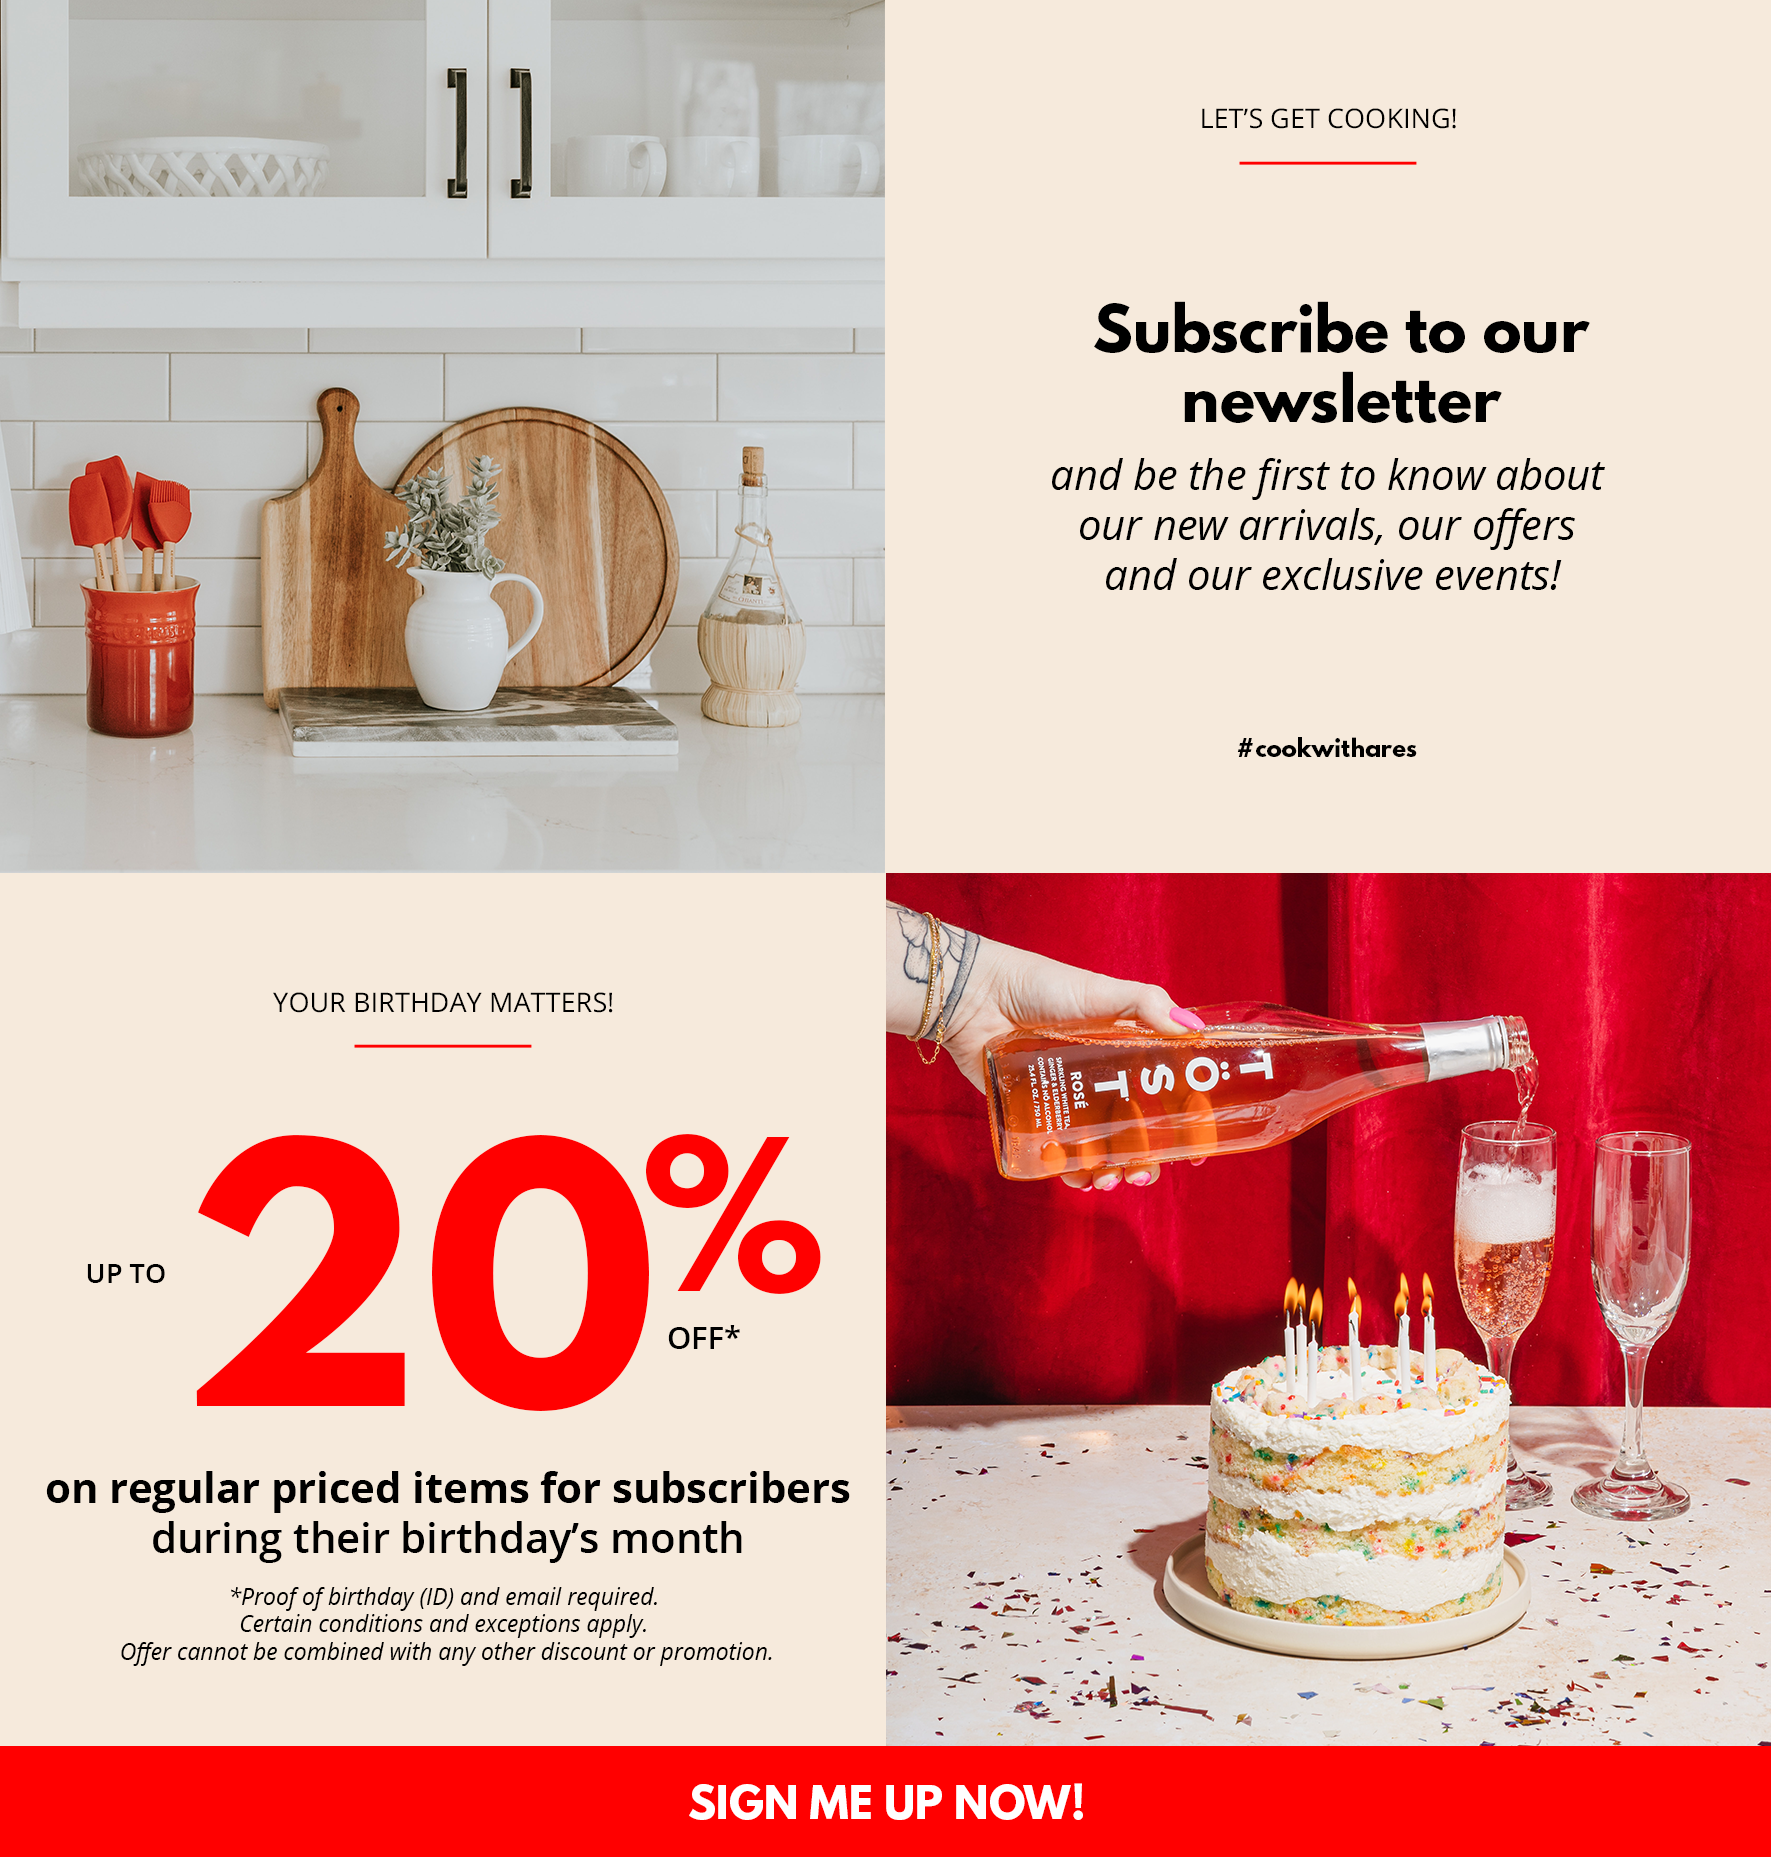 Subscribe to our newsletter! ARES CUISINE